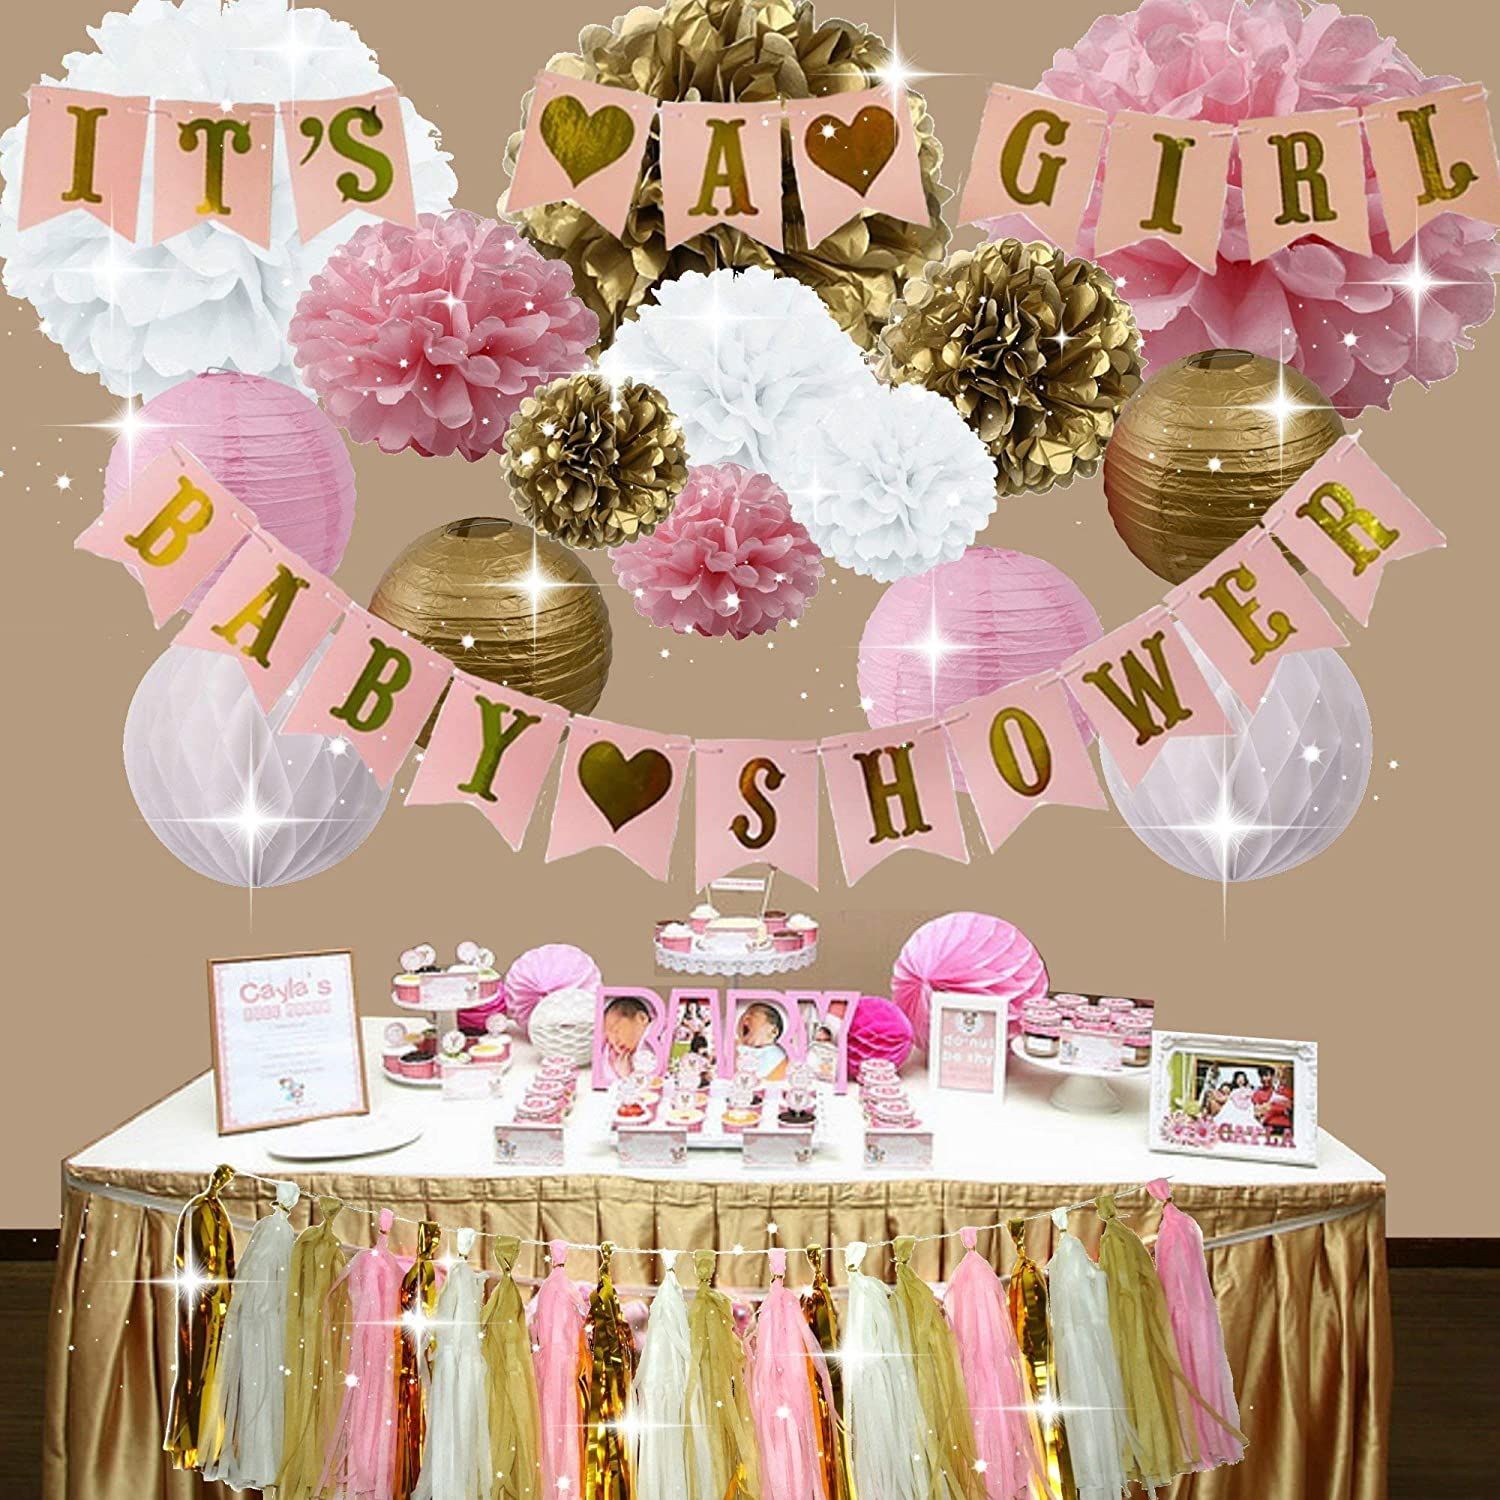 Pink and Gold Baby Shower Decorations for Girl, It's A Girl + Baby Shower  Garland Bunting Banner, Tissue Paper Pom Poms, Paper Lanterns, Paper  Honeycomb ...